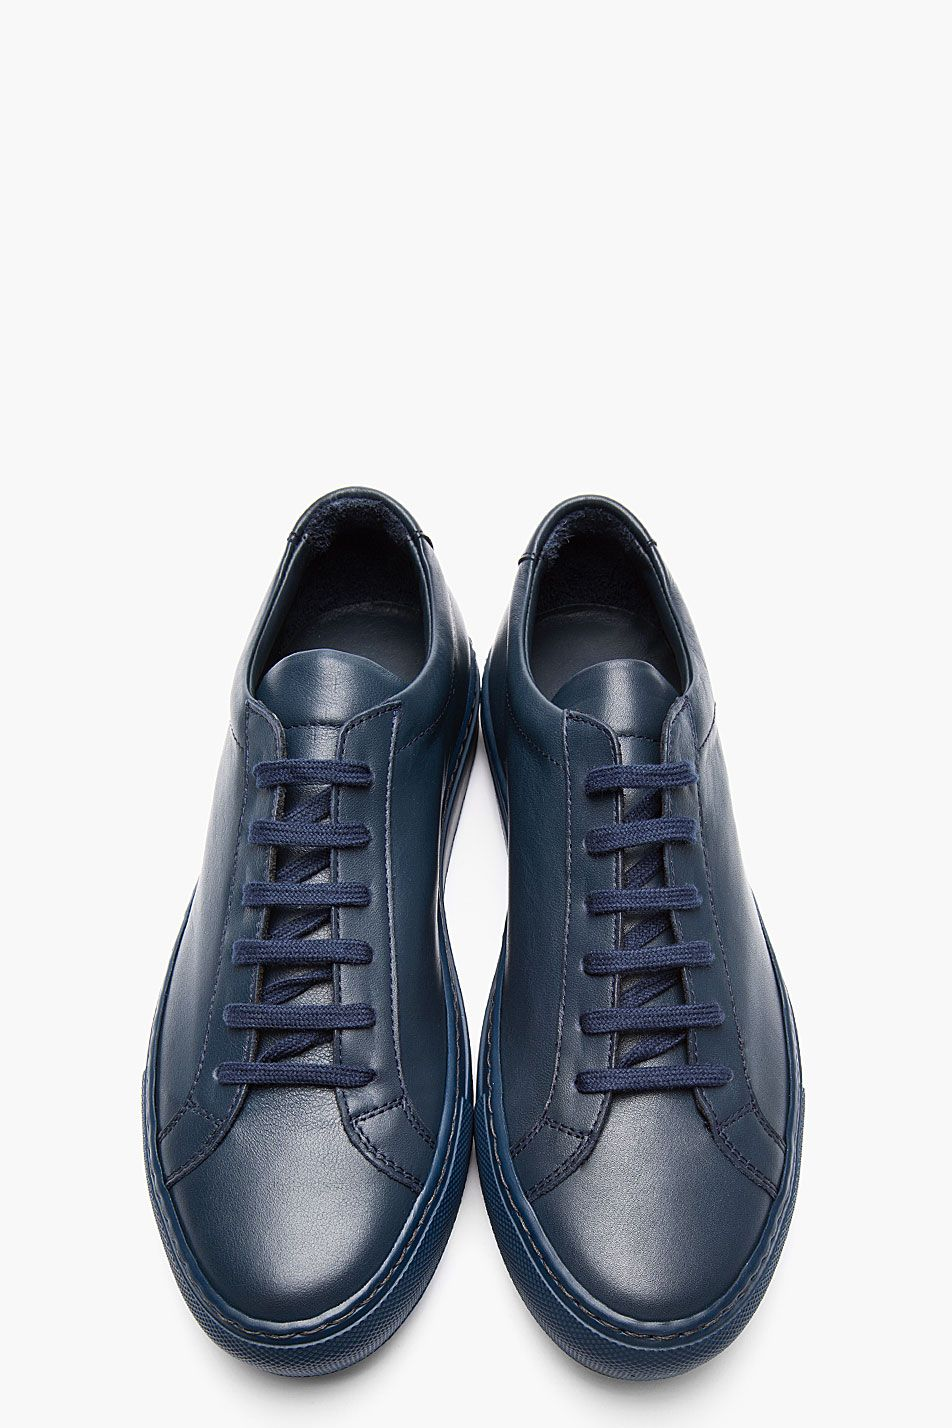 pretty nice c5a46 7dea7 COMMON PROJECTS Navy Leather Achilles Low-Top Sneakers Nike Joggers, Nike  Leggings, Nike